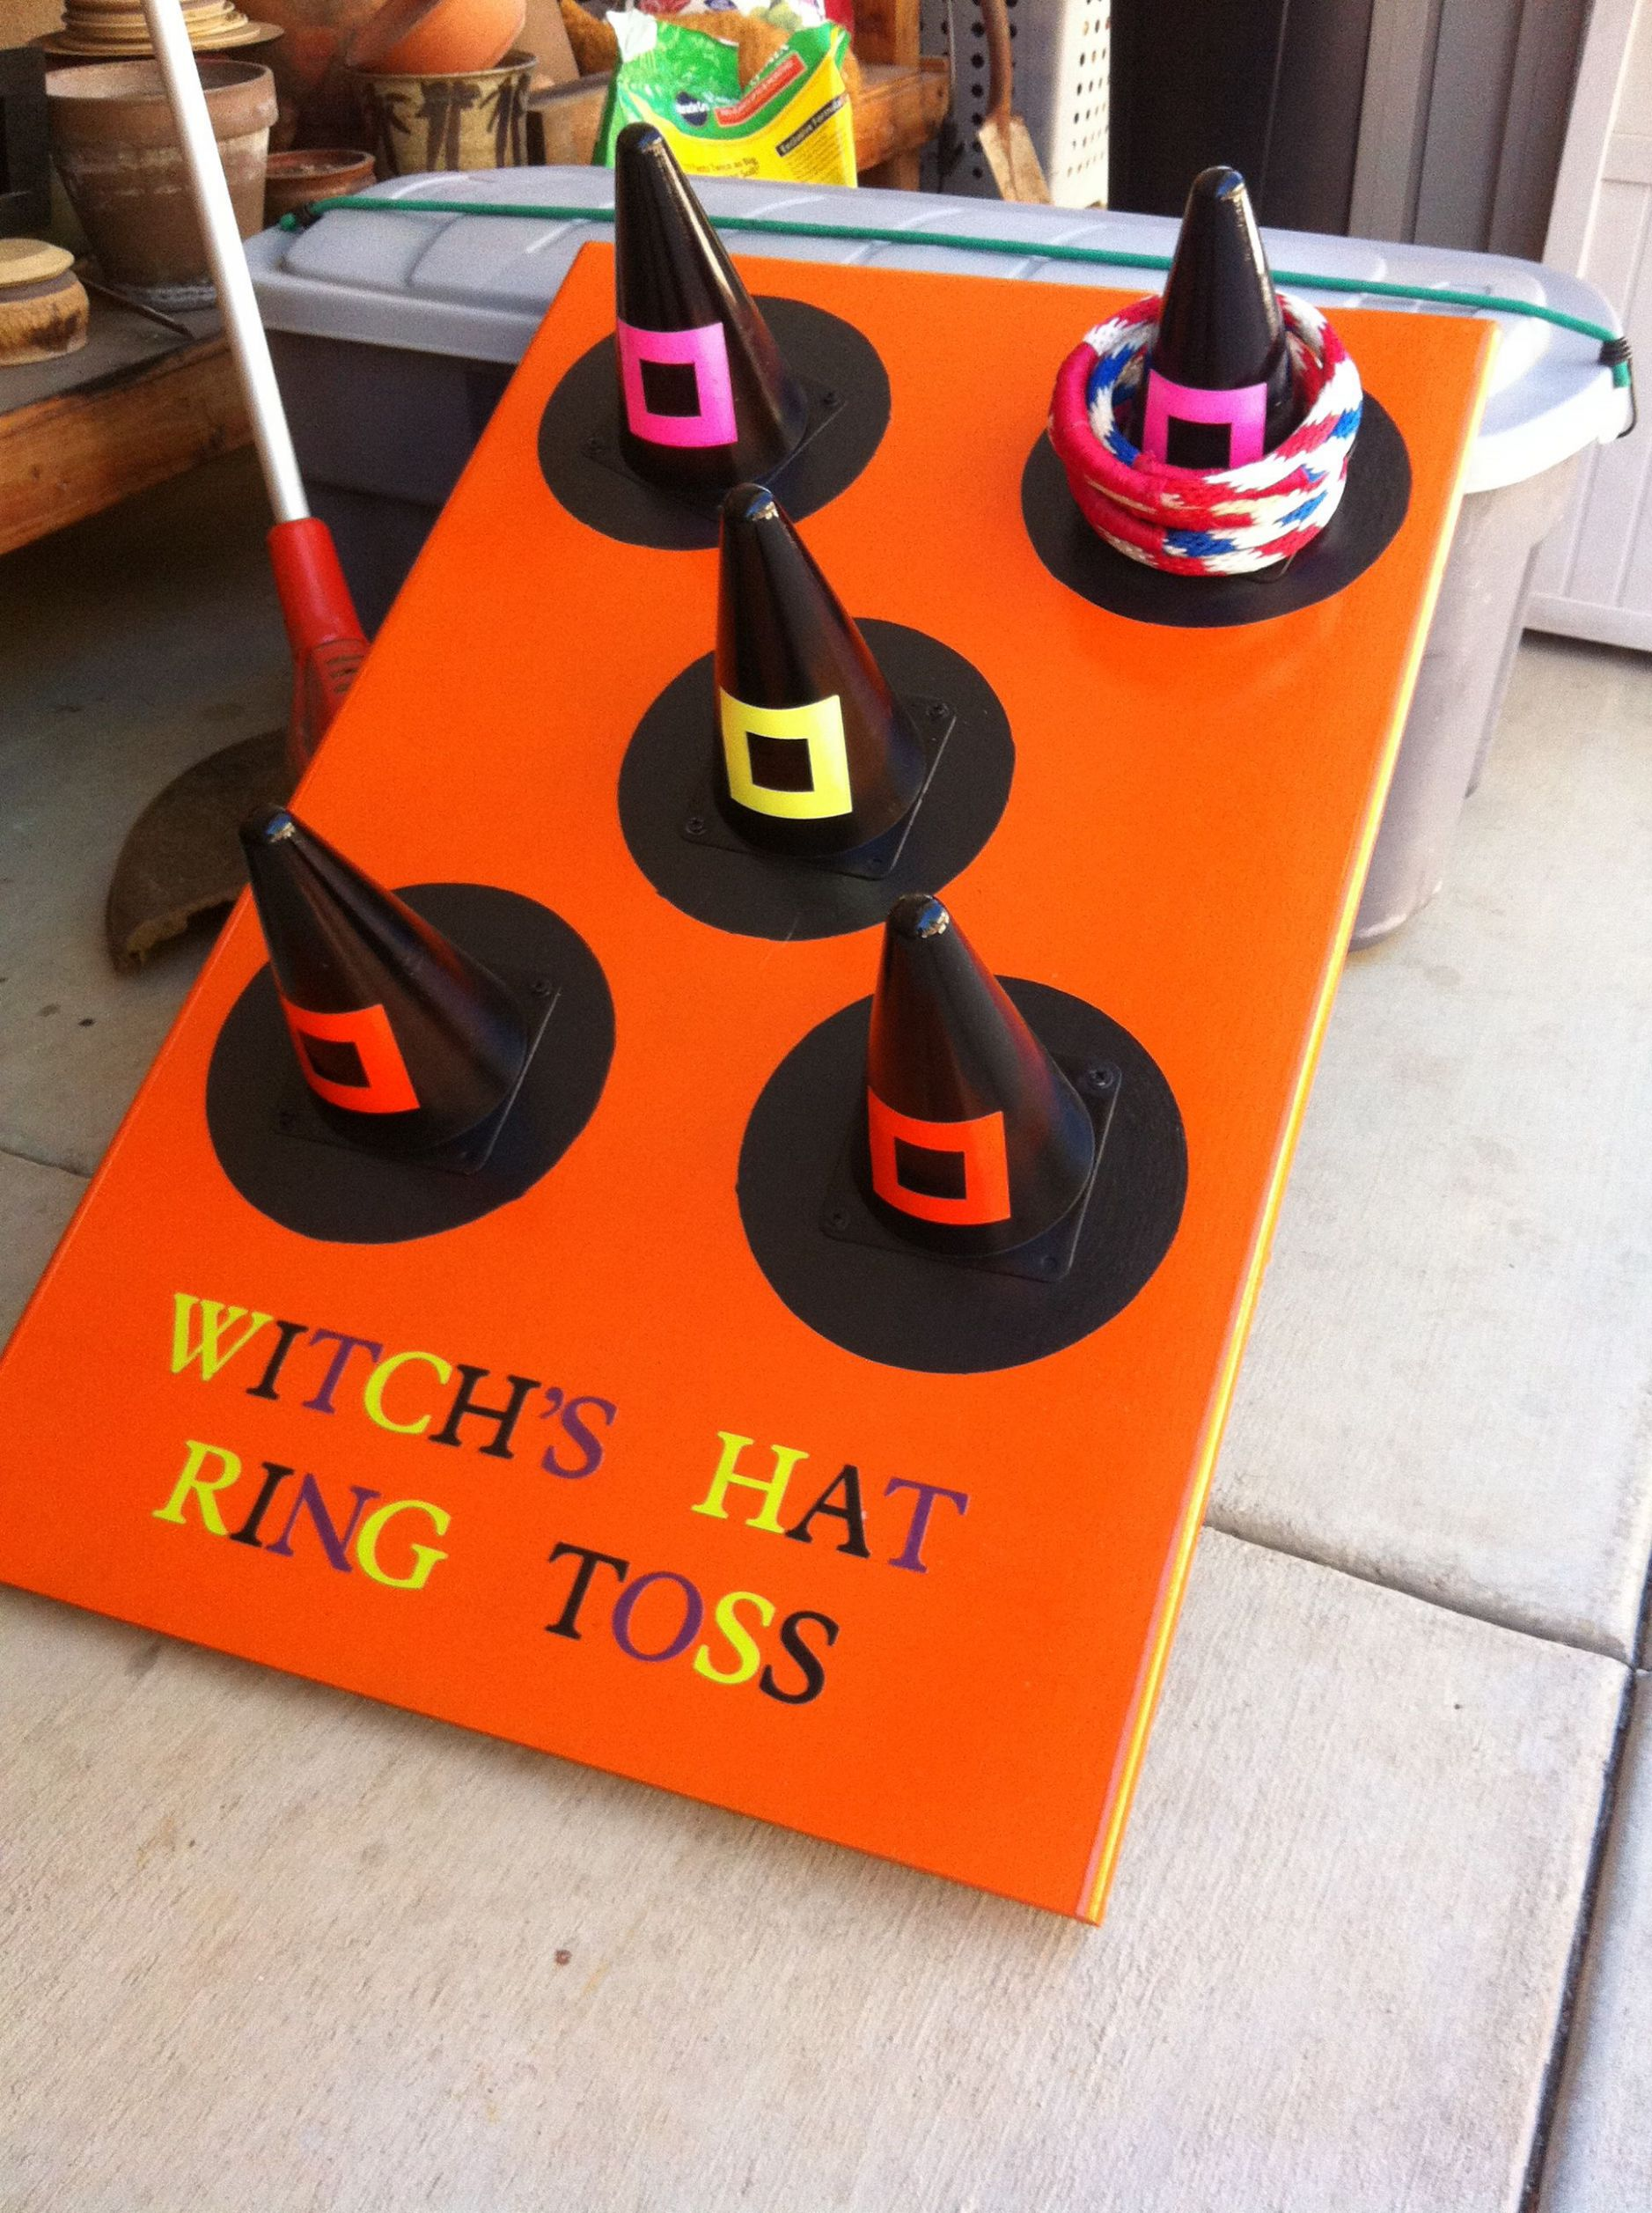 My parents made this awesome ring toss game for Halloween ..